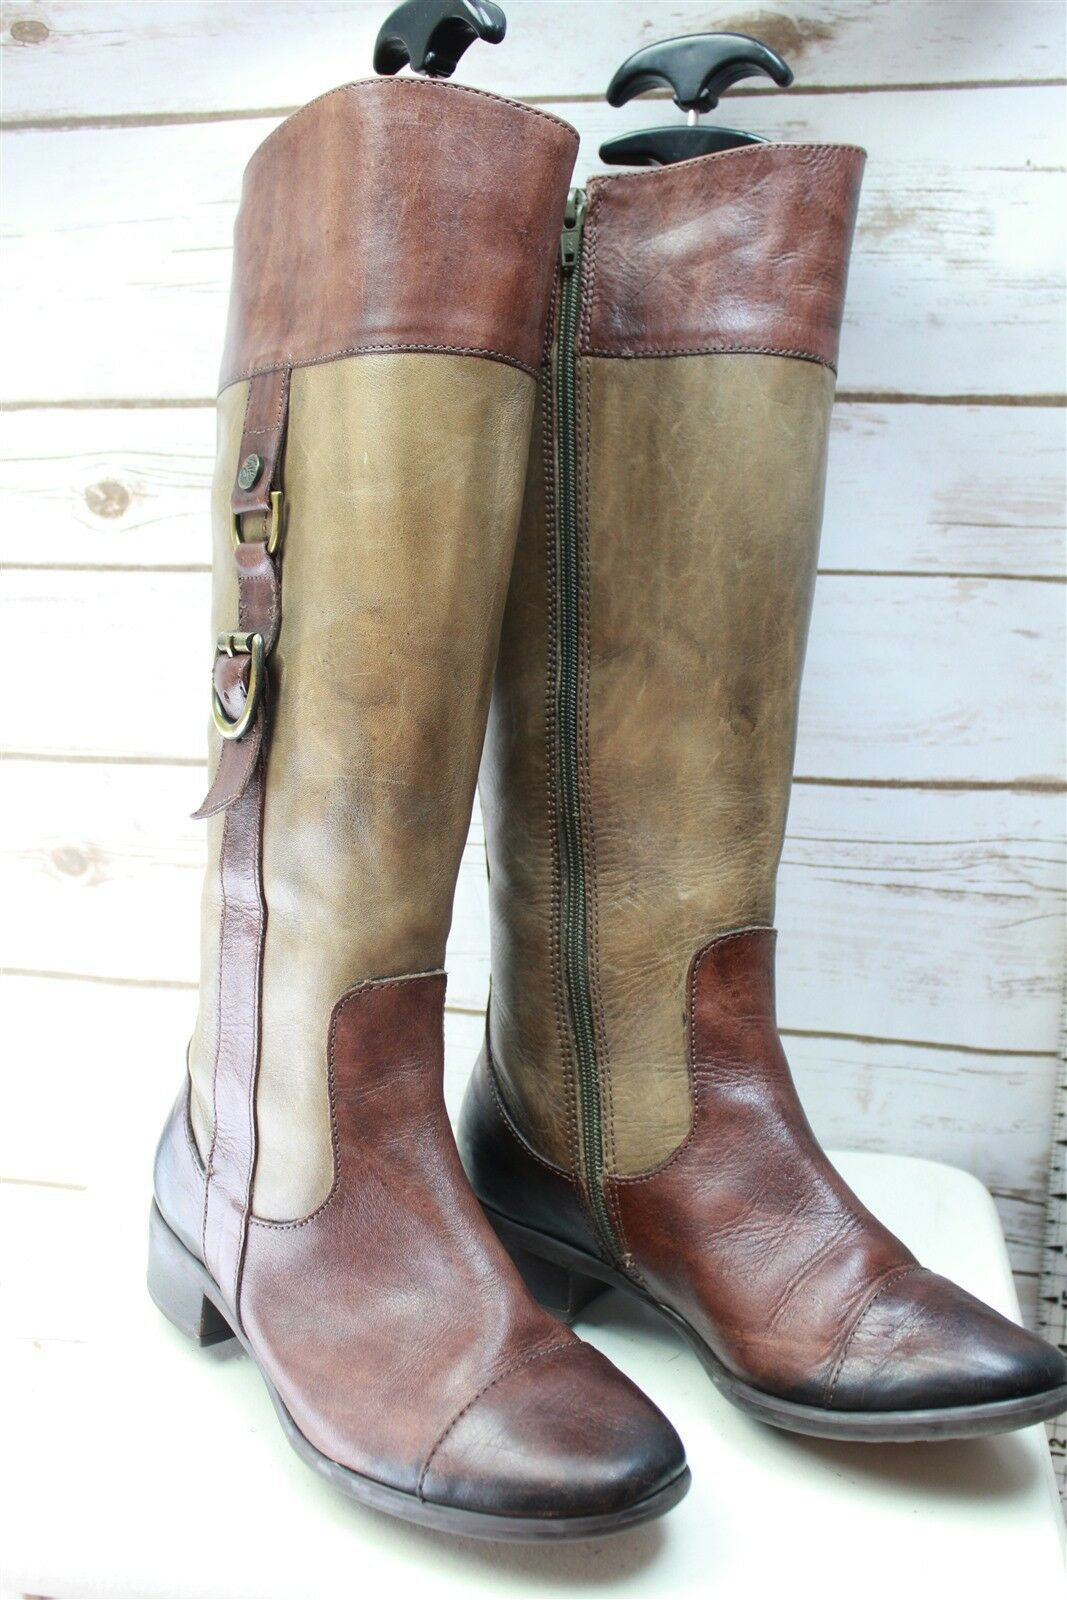 Nurture Brown Leather 6 M Women's Knee High Boots